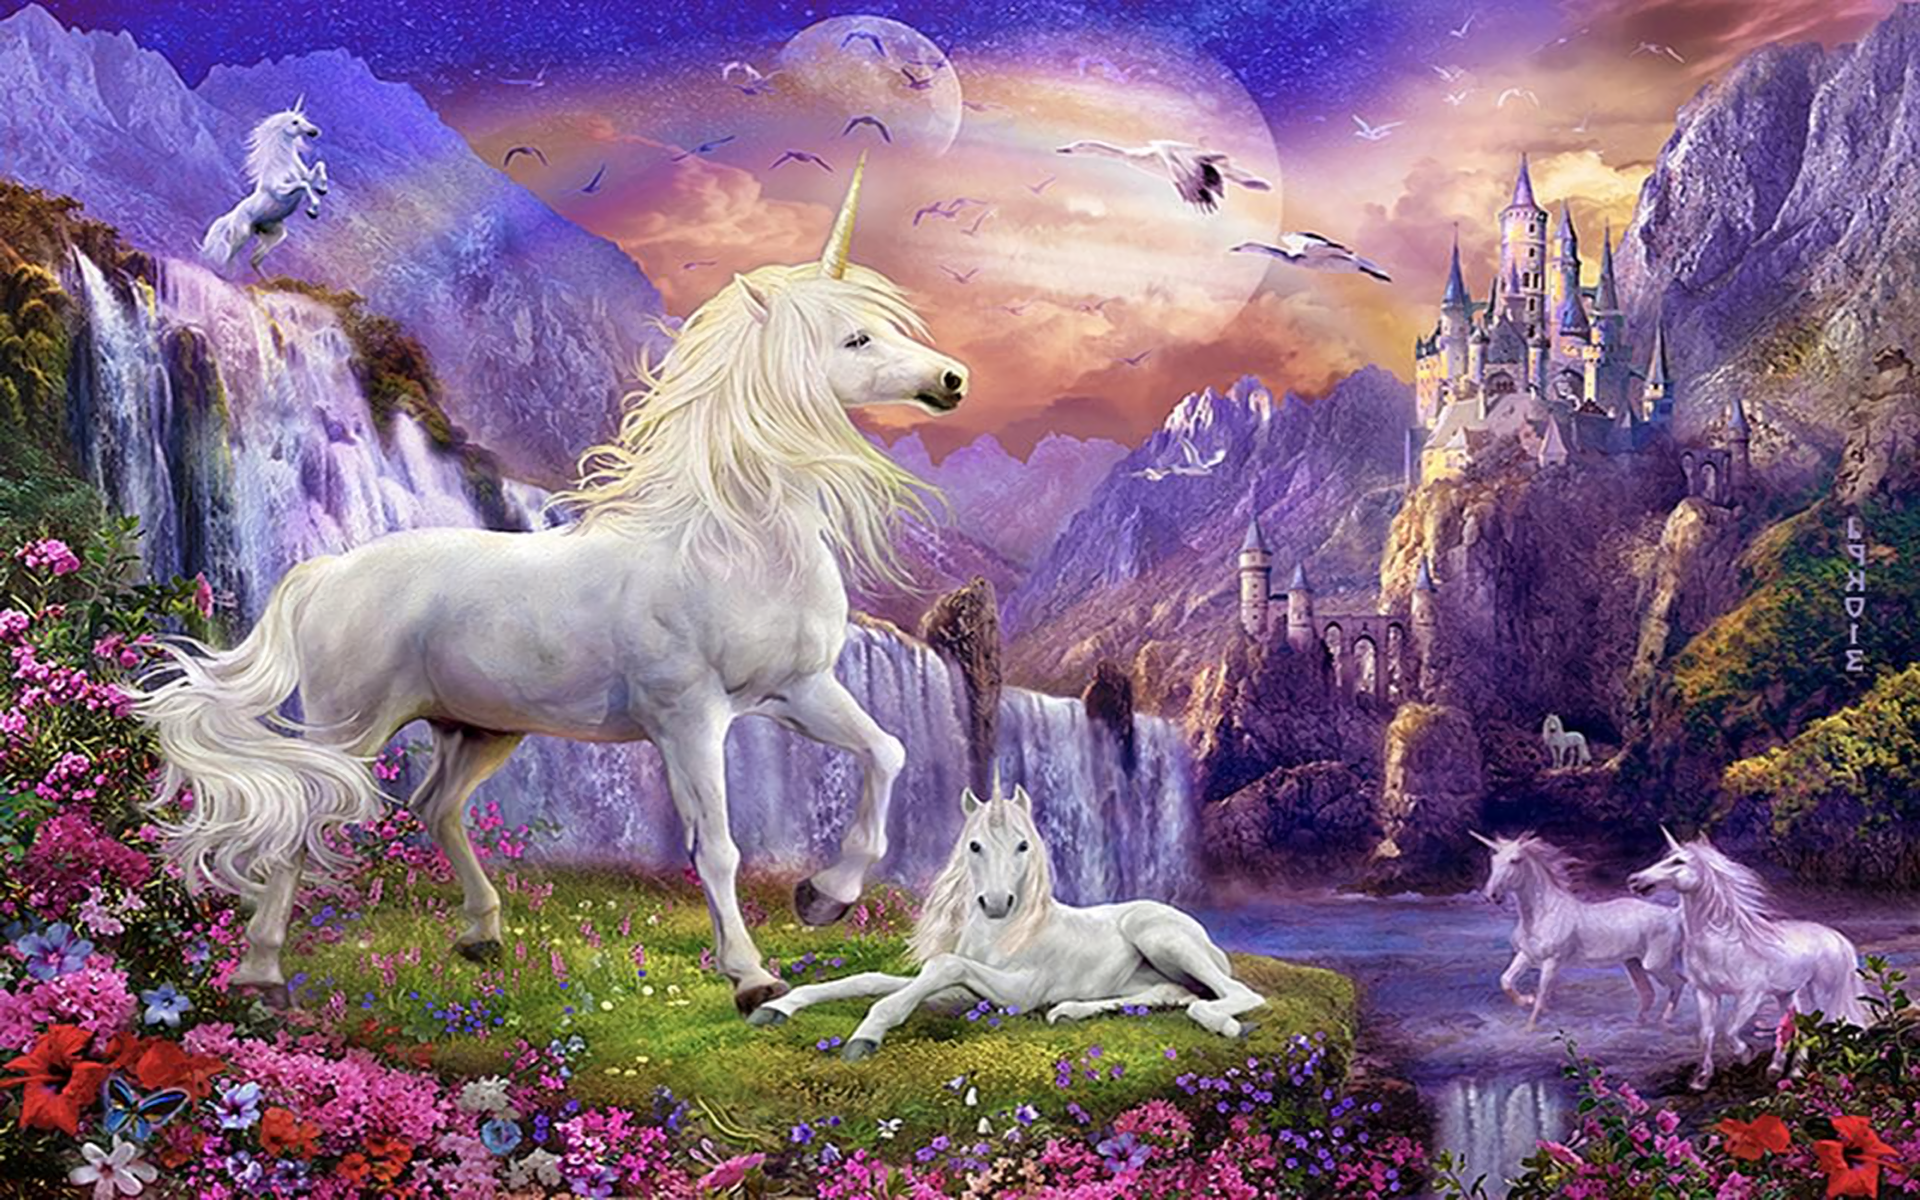 Unicorn Backgrounds Pictures Images HD Wallpapers Download Free Images Wallpaper [1000image.com]